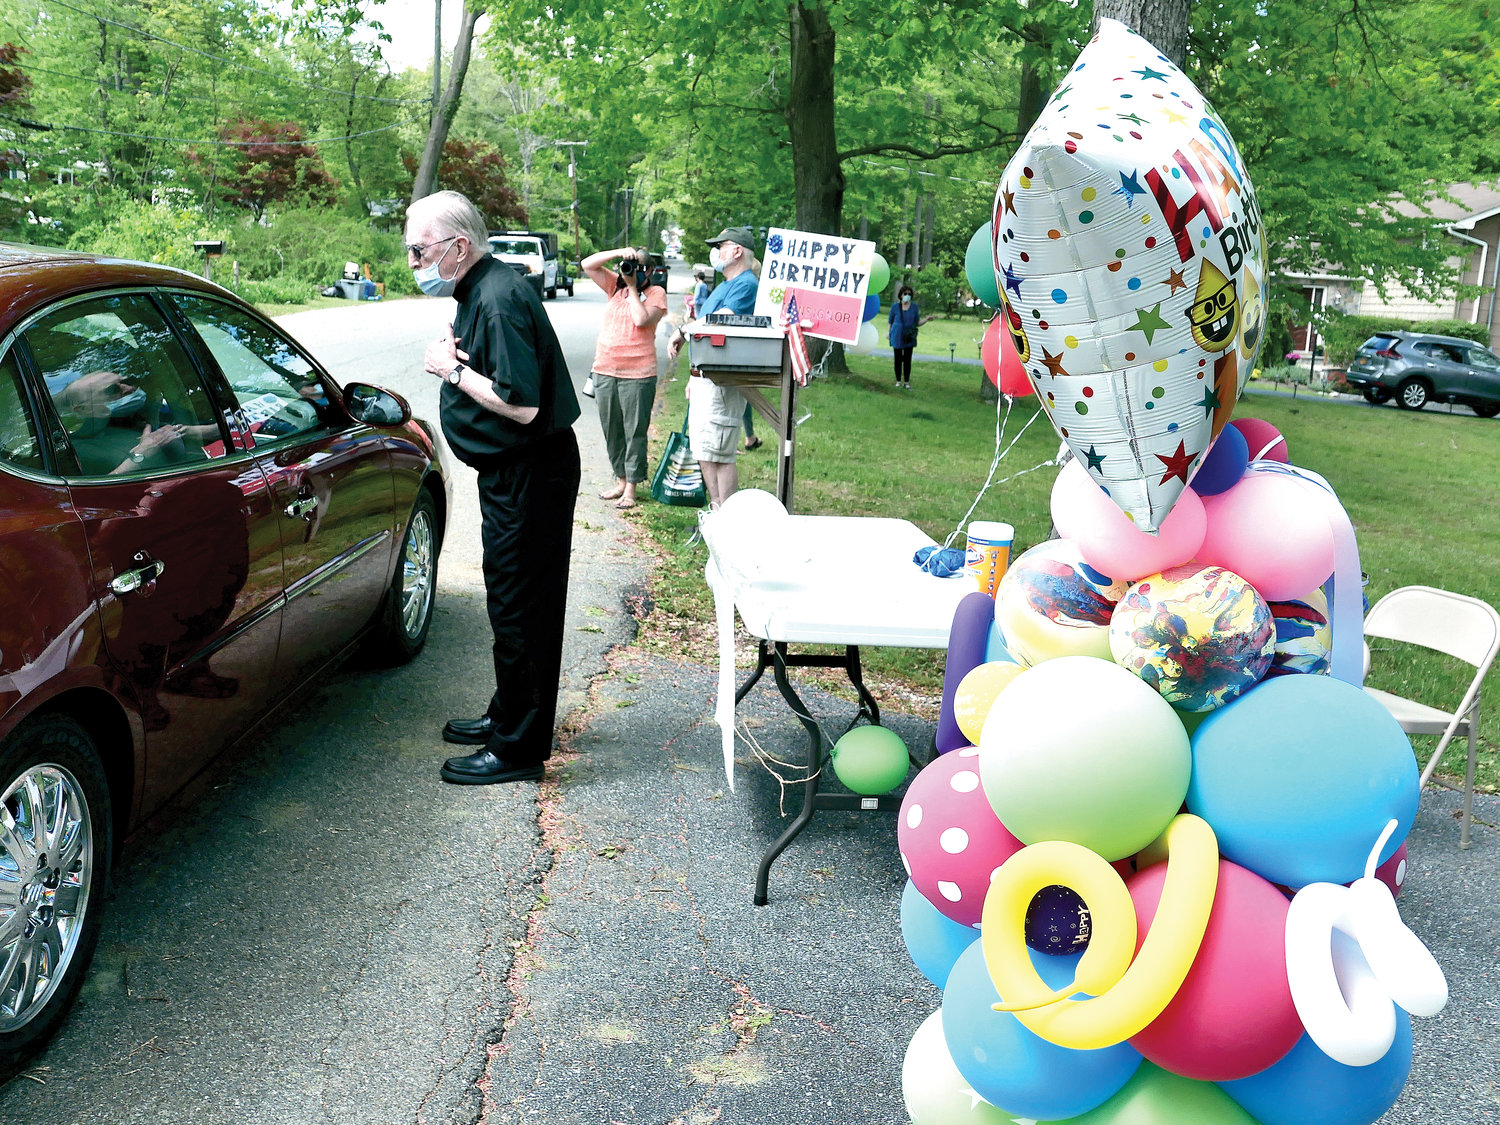 Msgr. Dermot Brennan, the beloved pastor emeritus of St. Patrick's parish in Yorktown Heights, receives guests at his surprise 90th birthday car parade outside a house of a former parishioner on Gregory Street in Yorktown Heights. A long line of cars traversed the parade route. Festive balloons and creative, homemade signs made colorful party props.